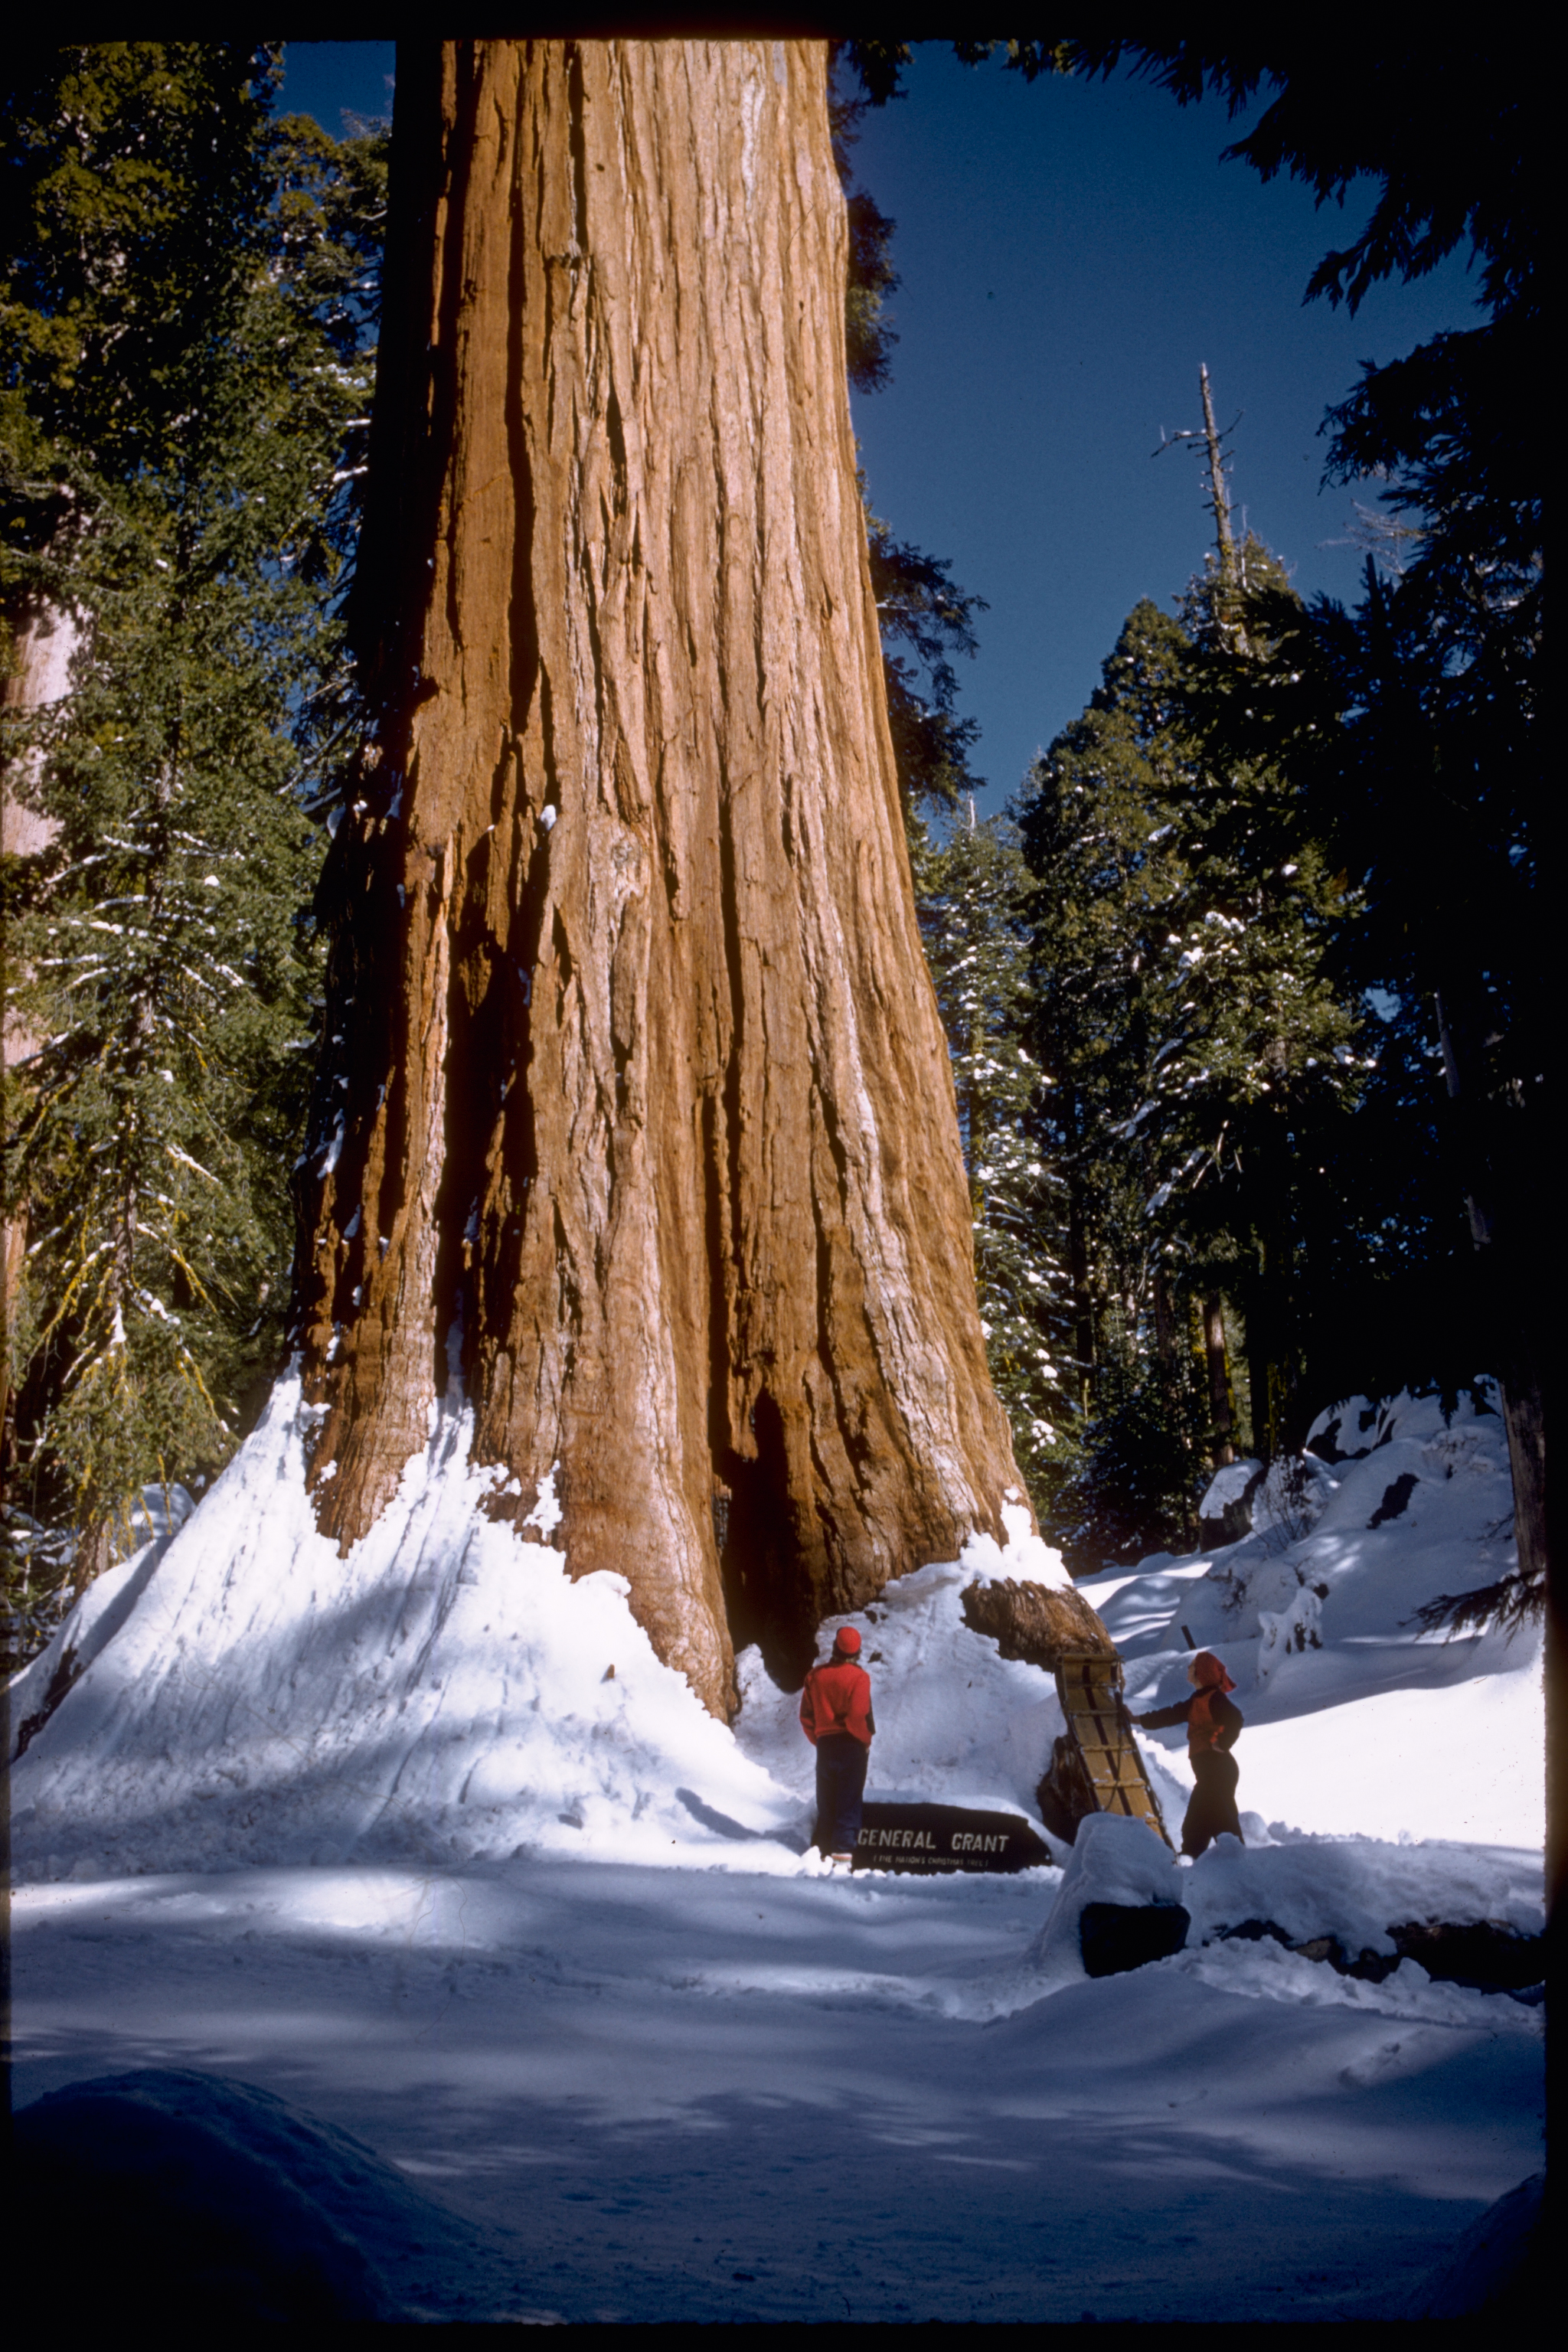 Sequoia_and_Kings_Canyon_National_Parks_SEKI2211.jpg